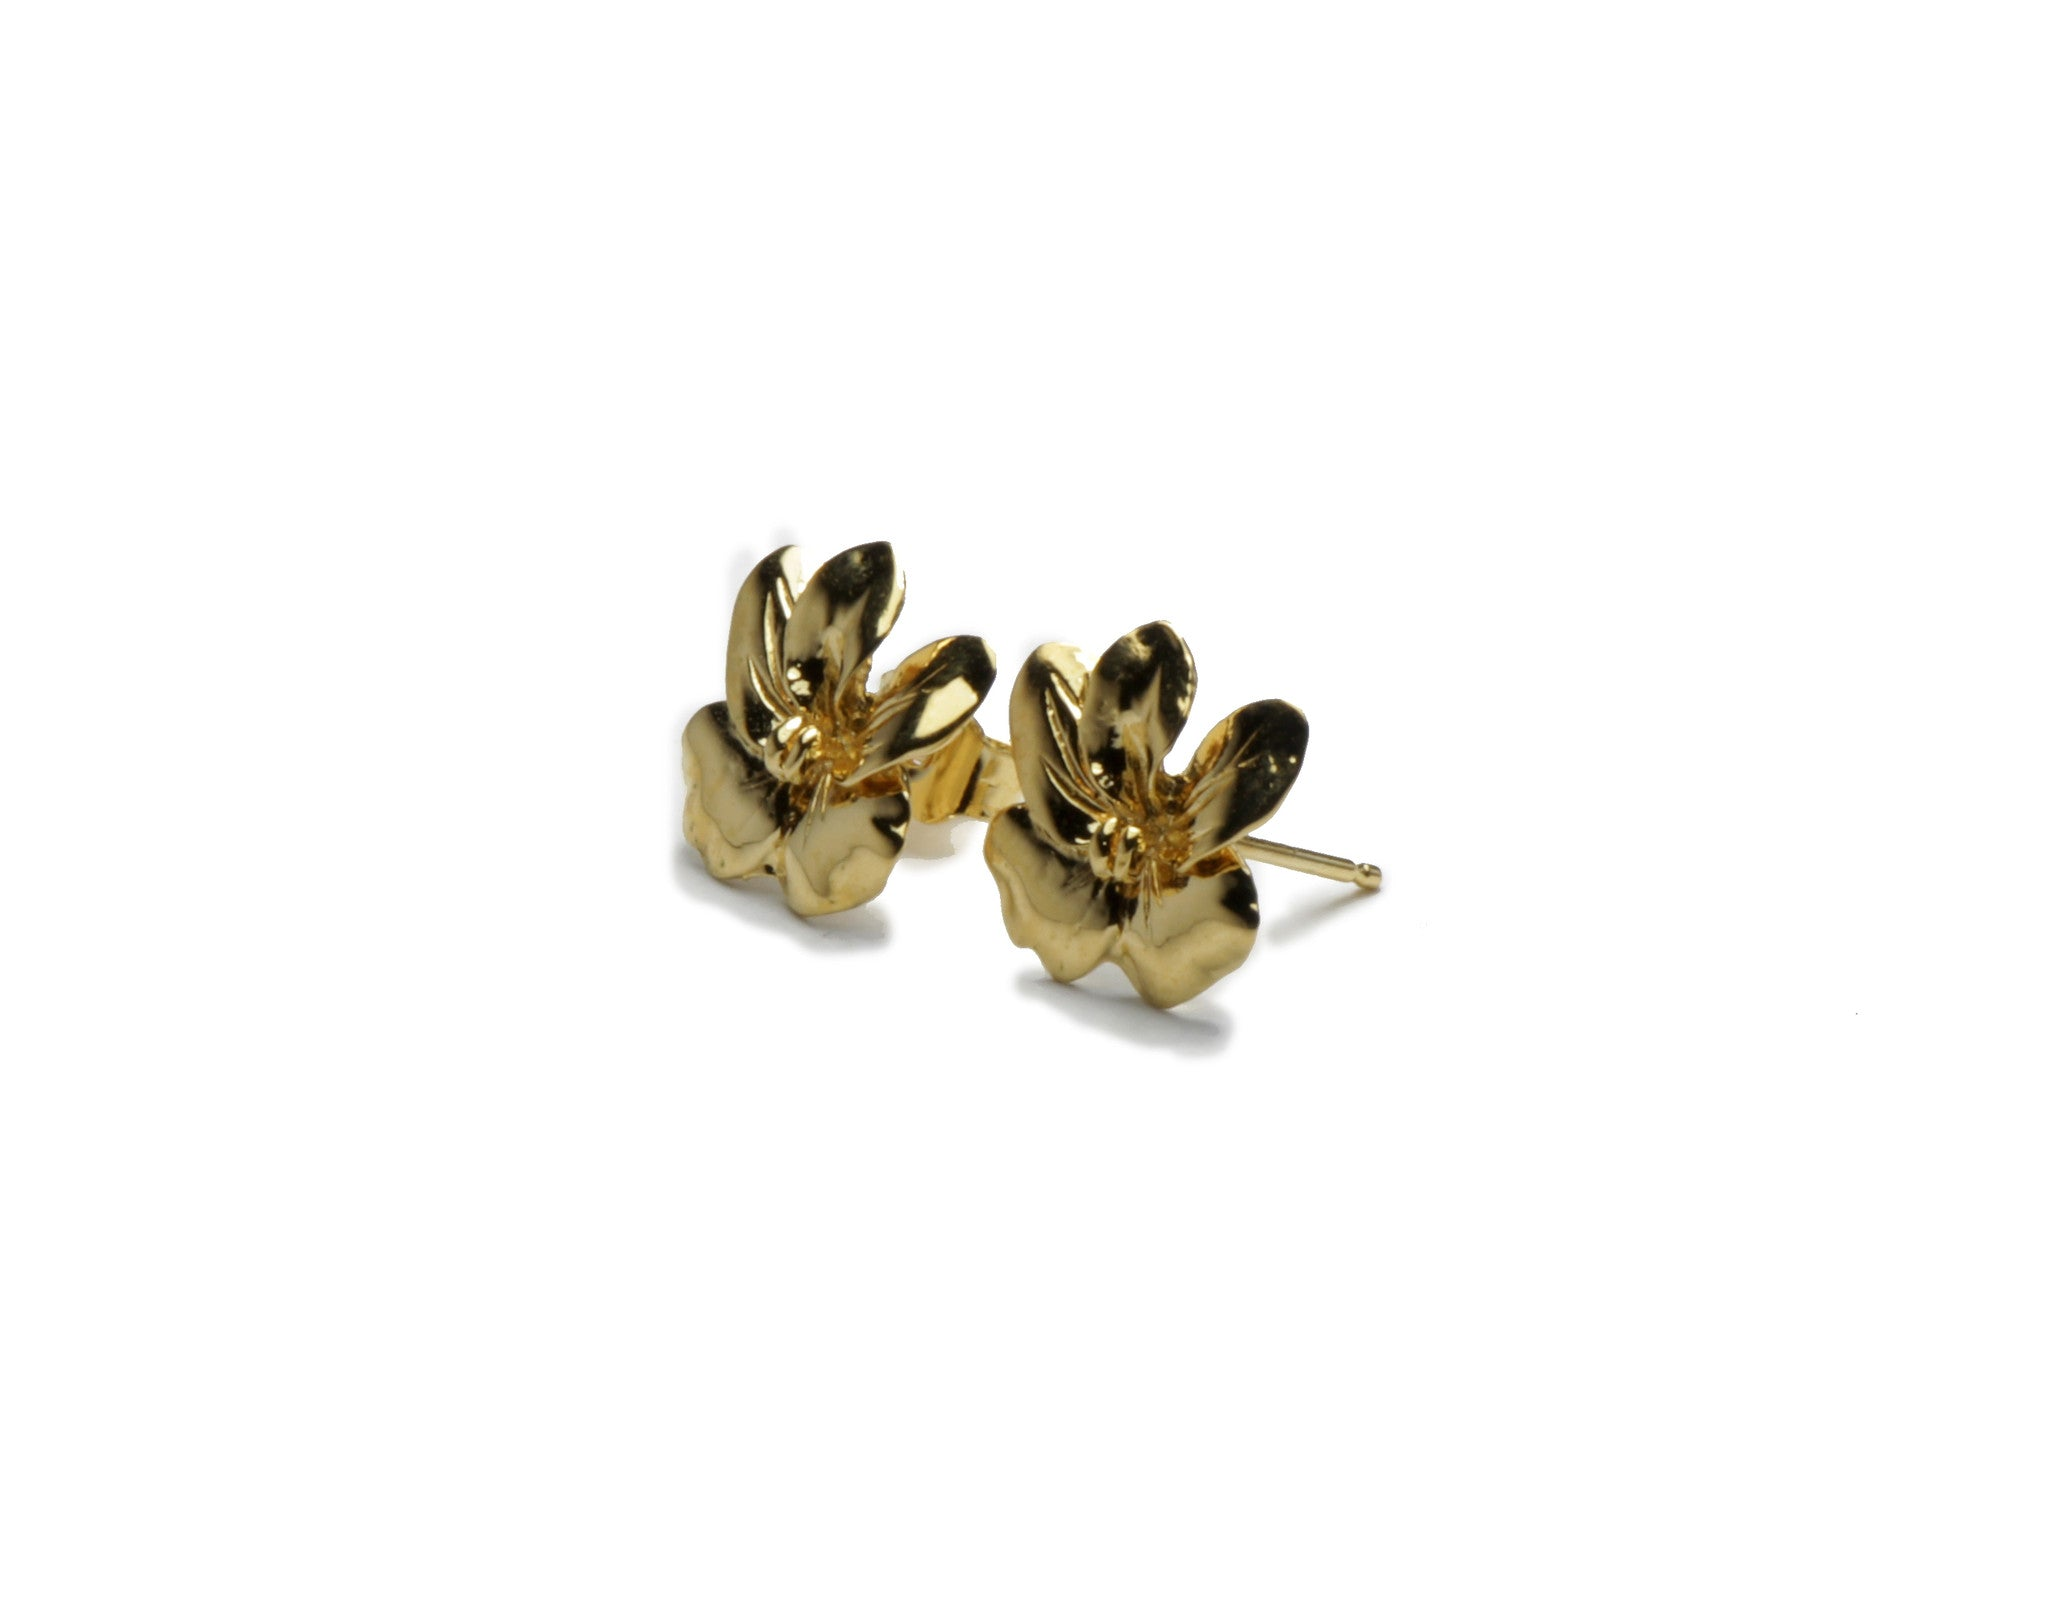 Flower stud earrings - gold over brass